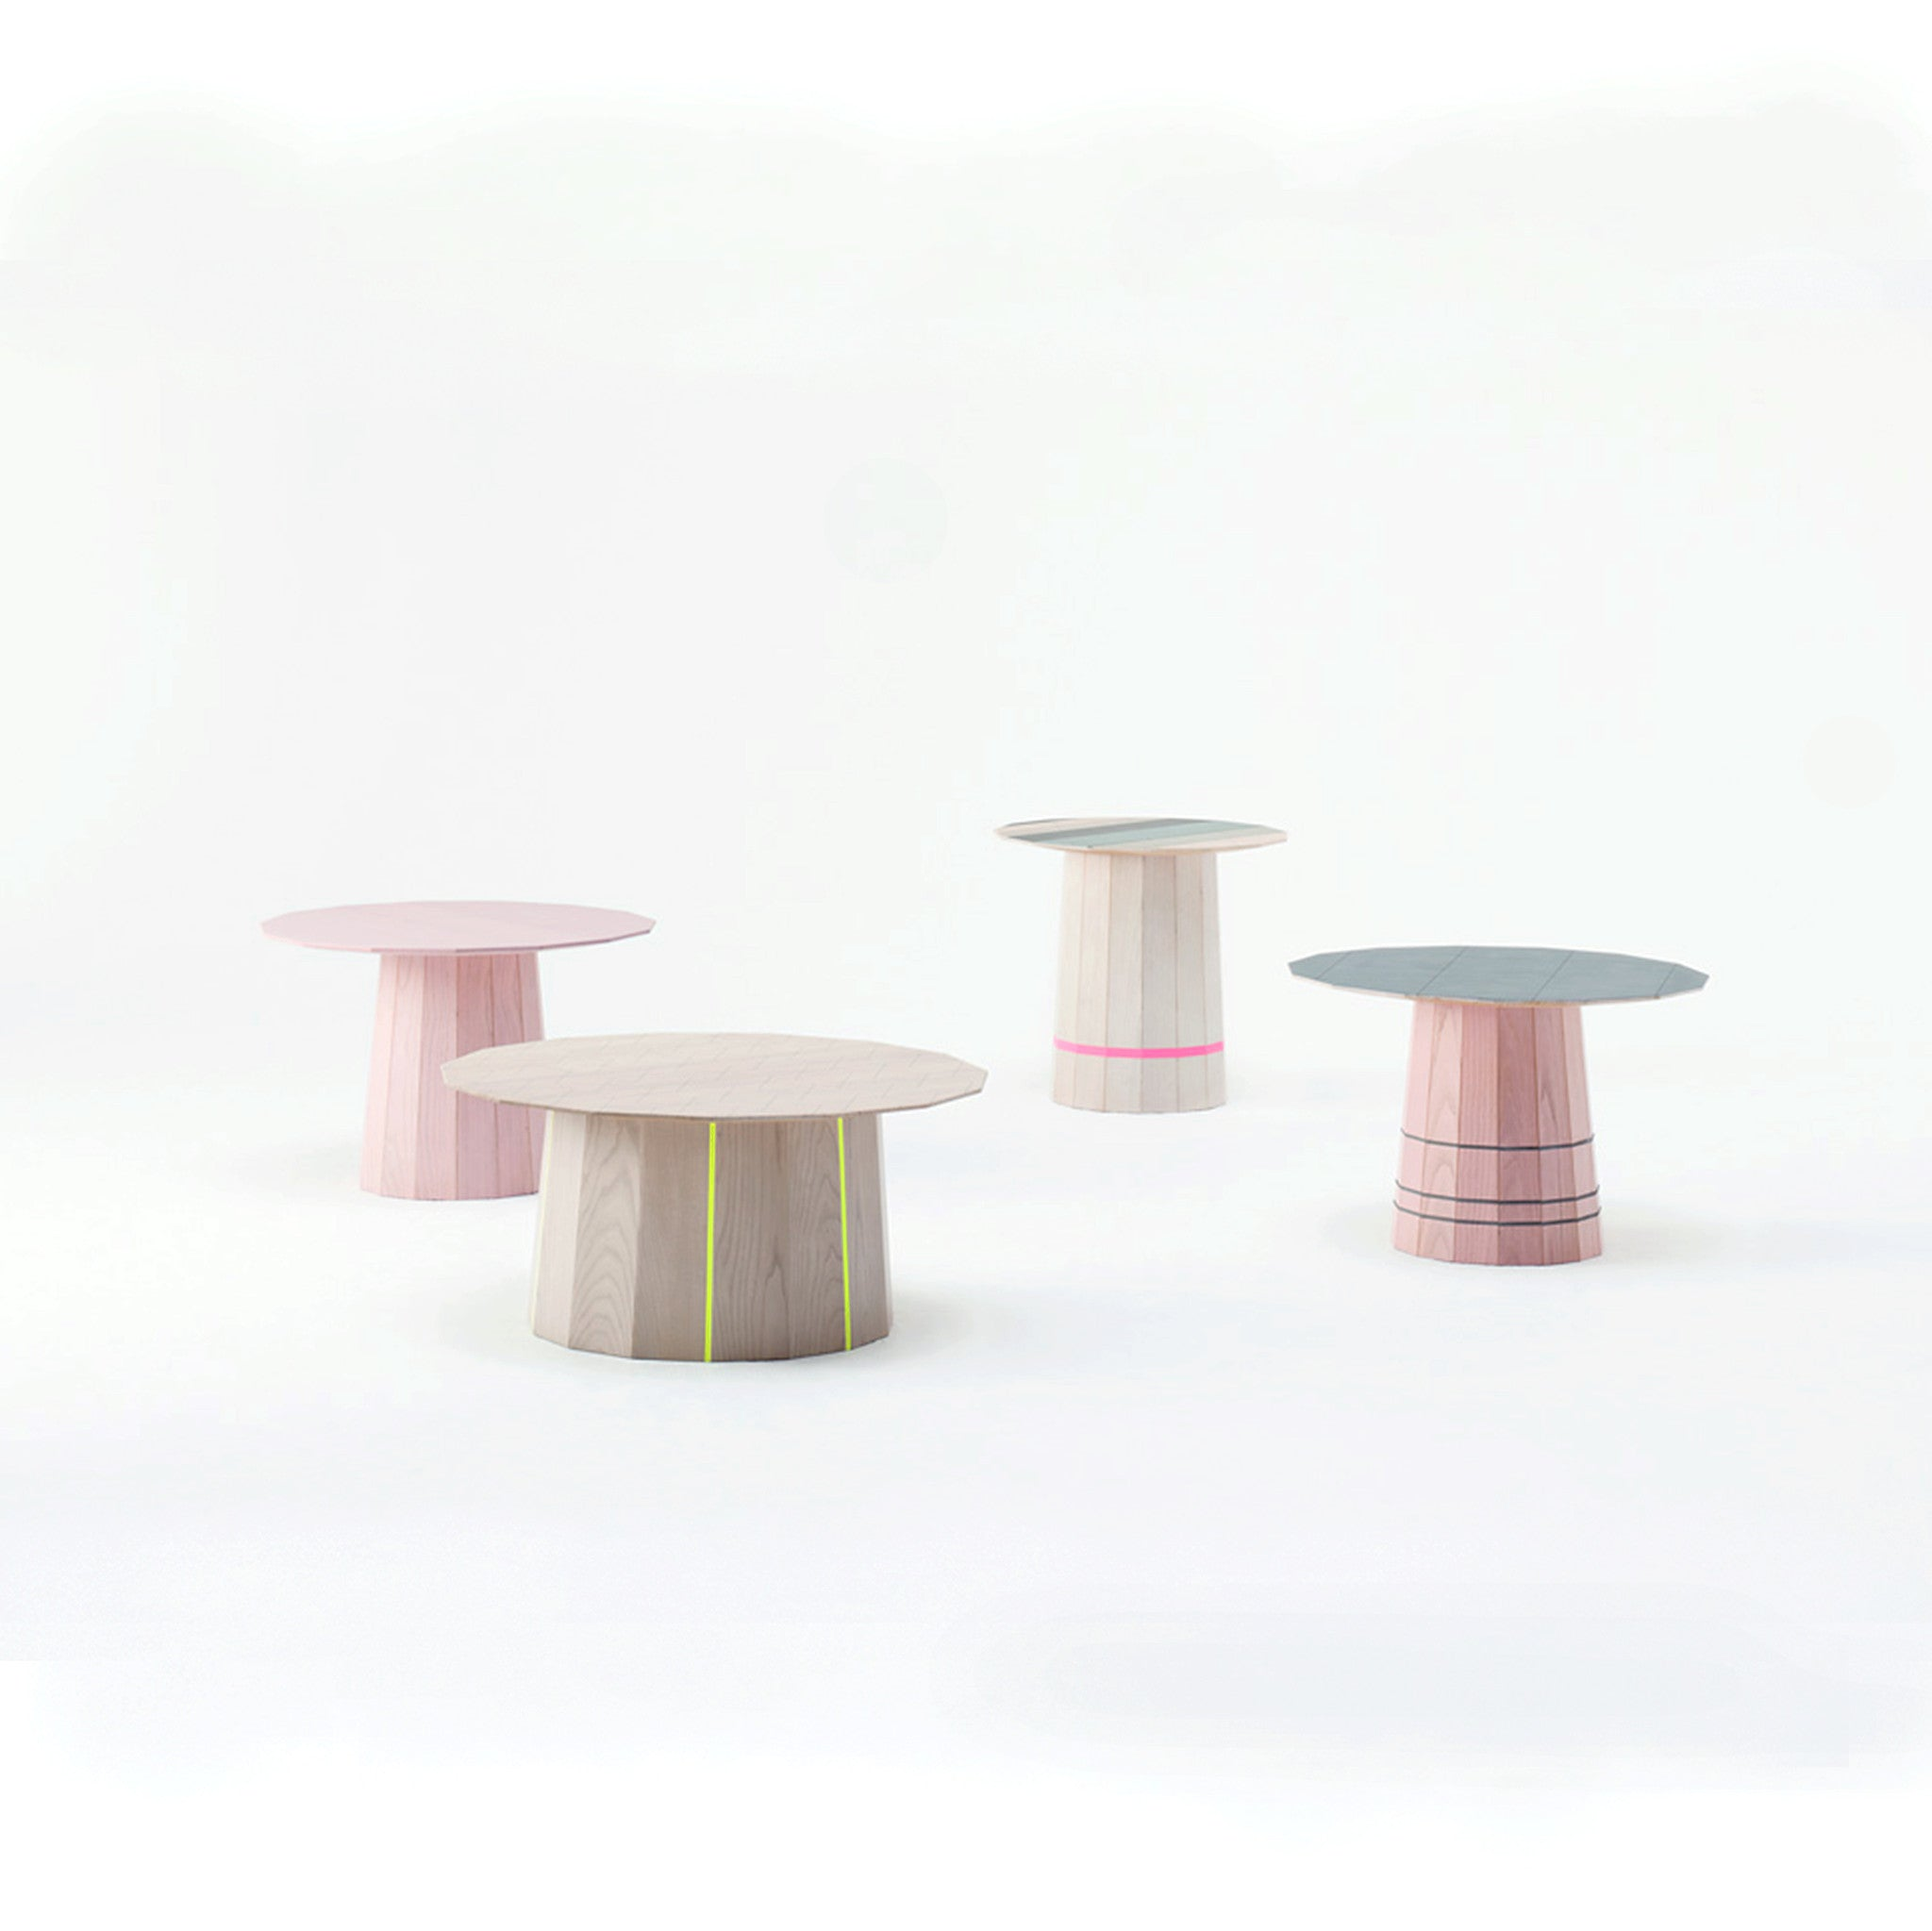 Karimoku New Standard - COLOUR WOOD PINK d600 - Coffee Table